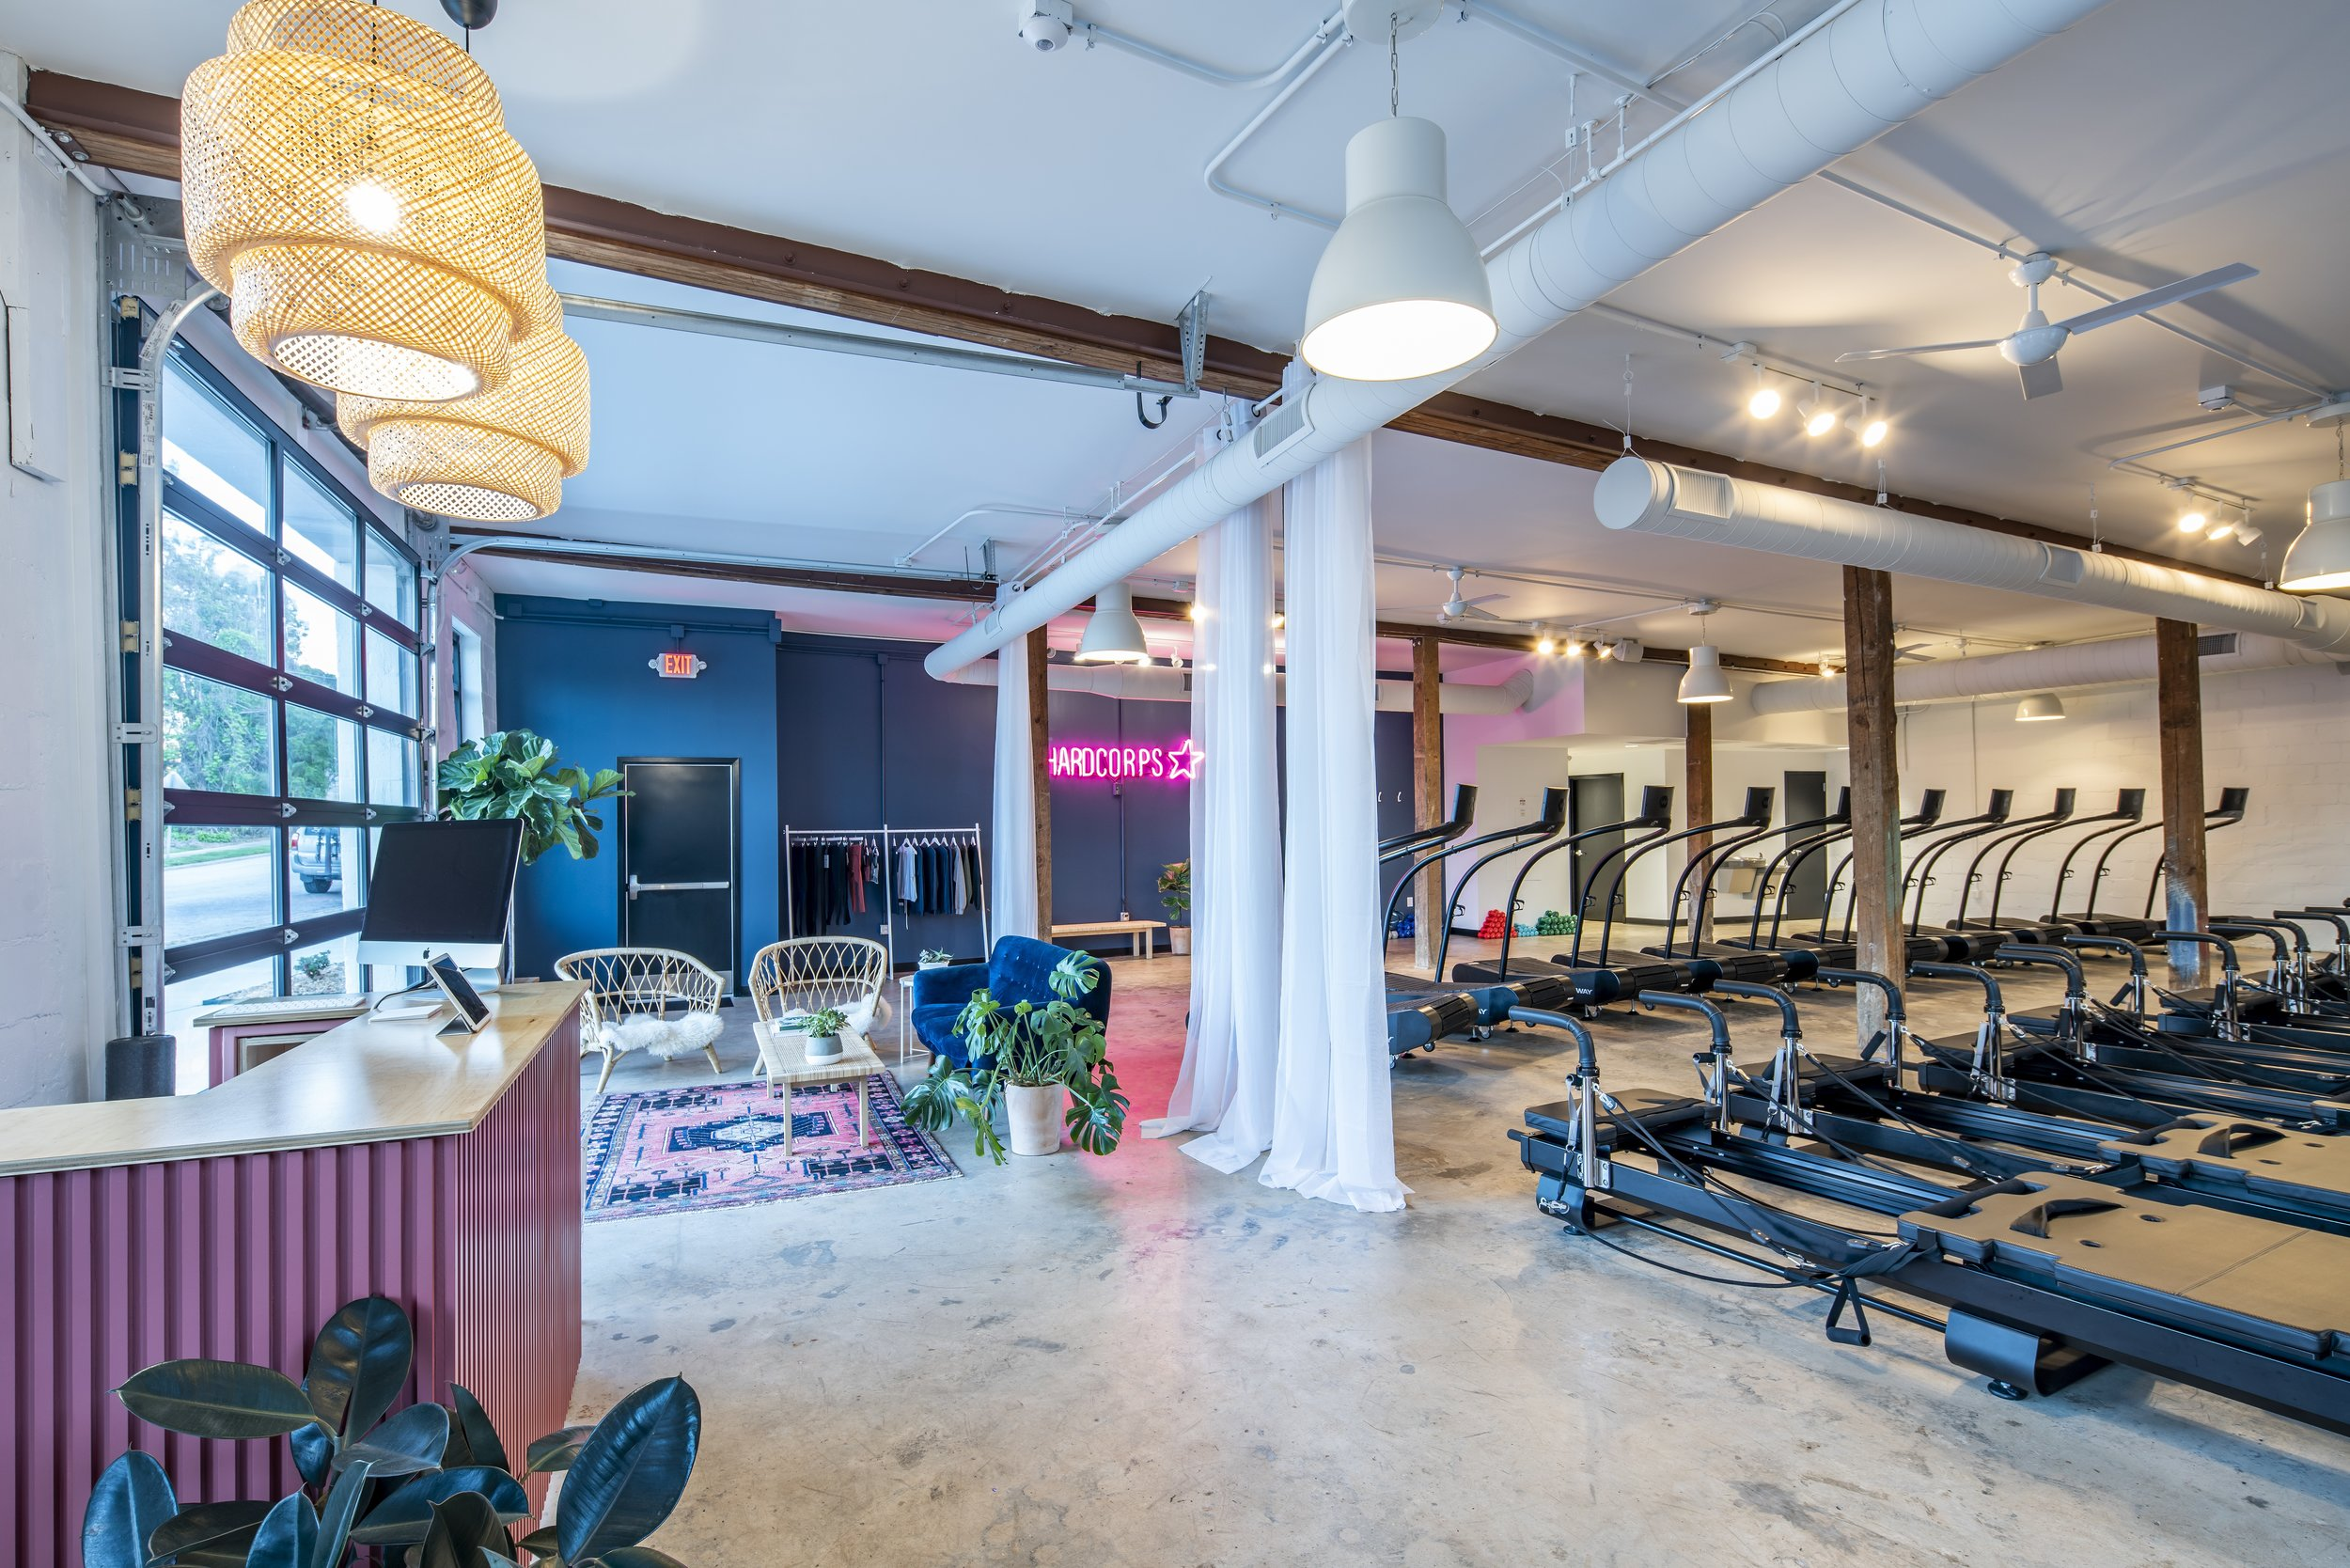 FLOWCORPS - 2,600 sq ft fitness studio